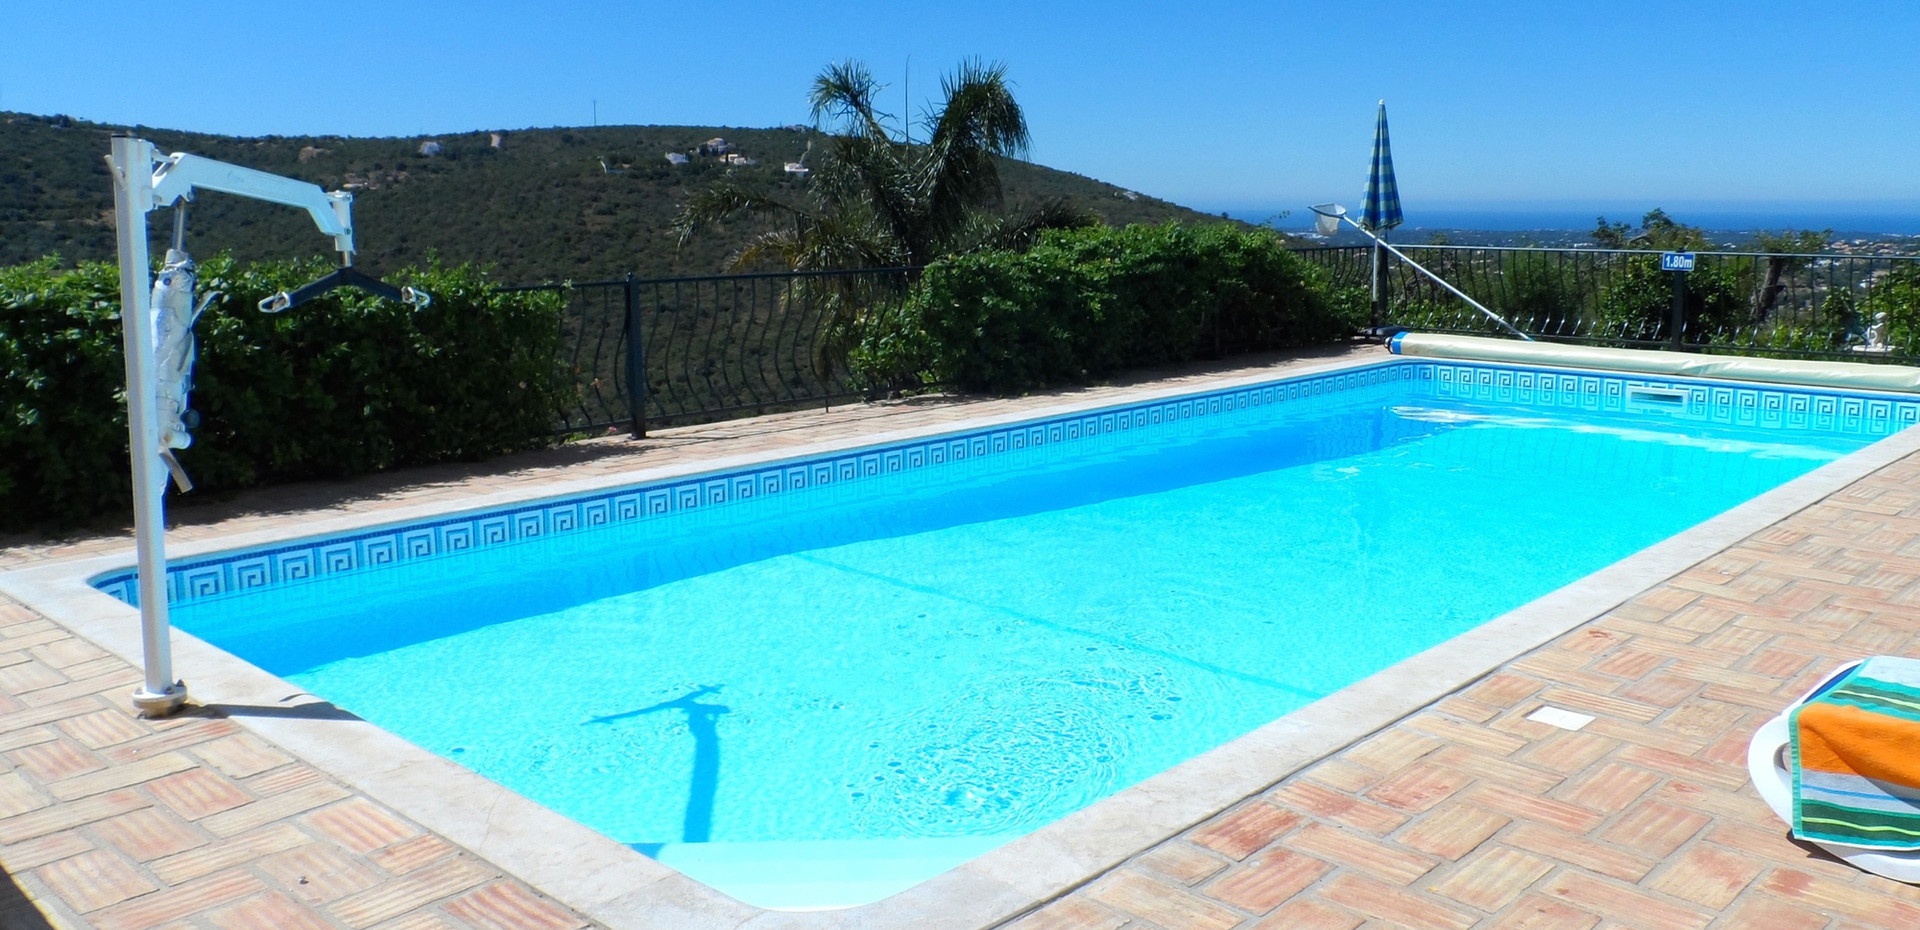 The 10x4 metre accessible pool